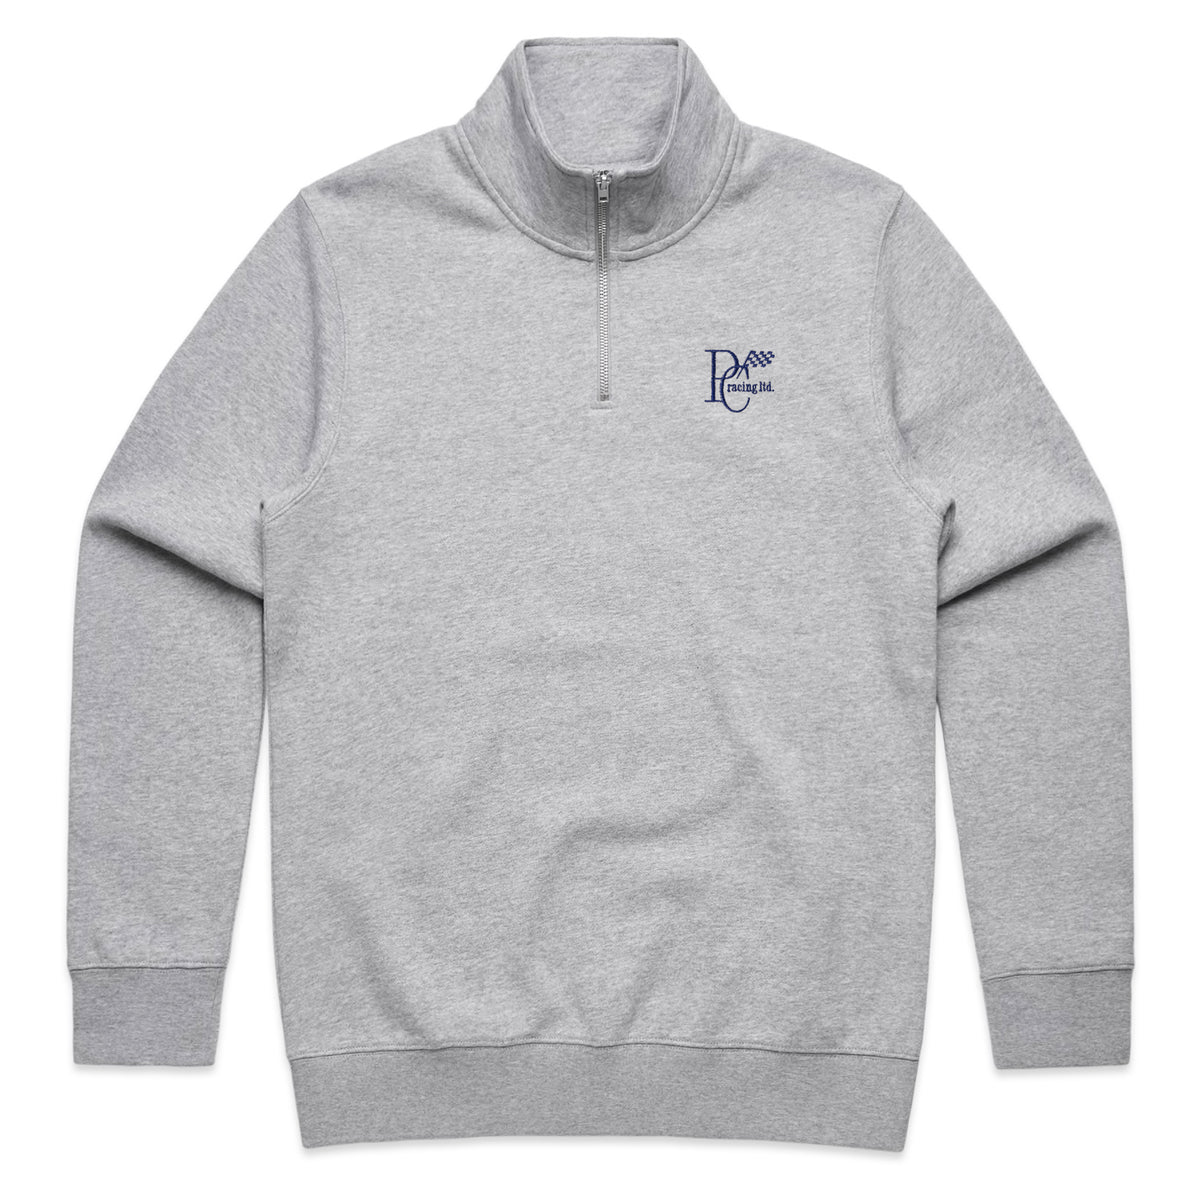 PERIOD CORRECT HALF ZIP SWEATER GRAY